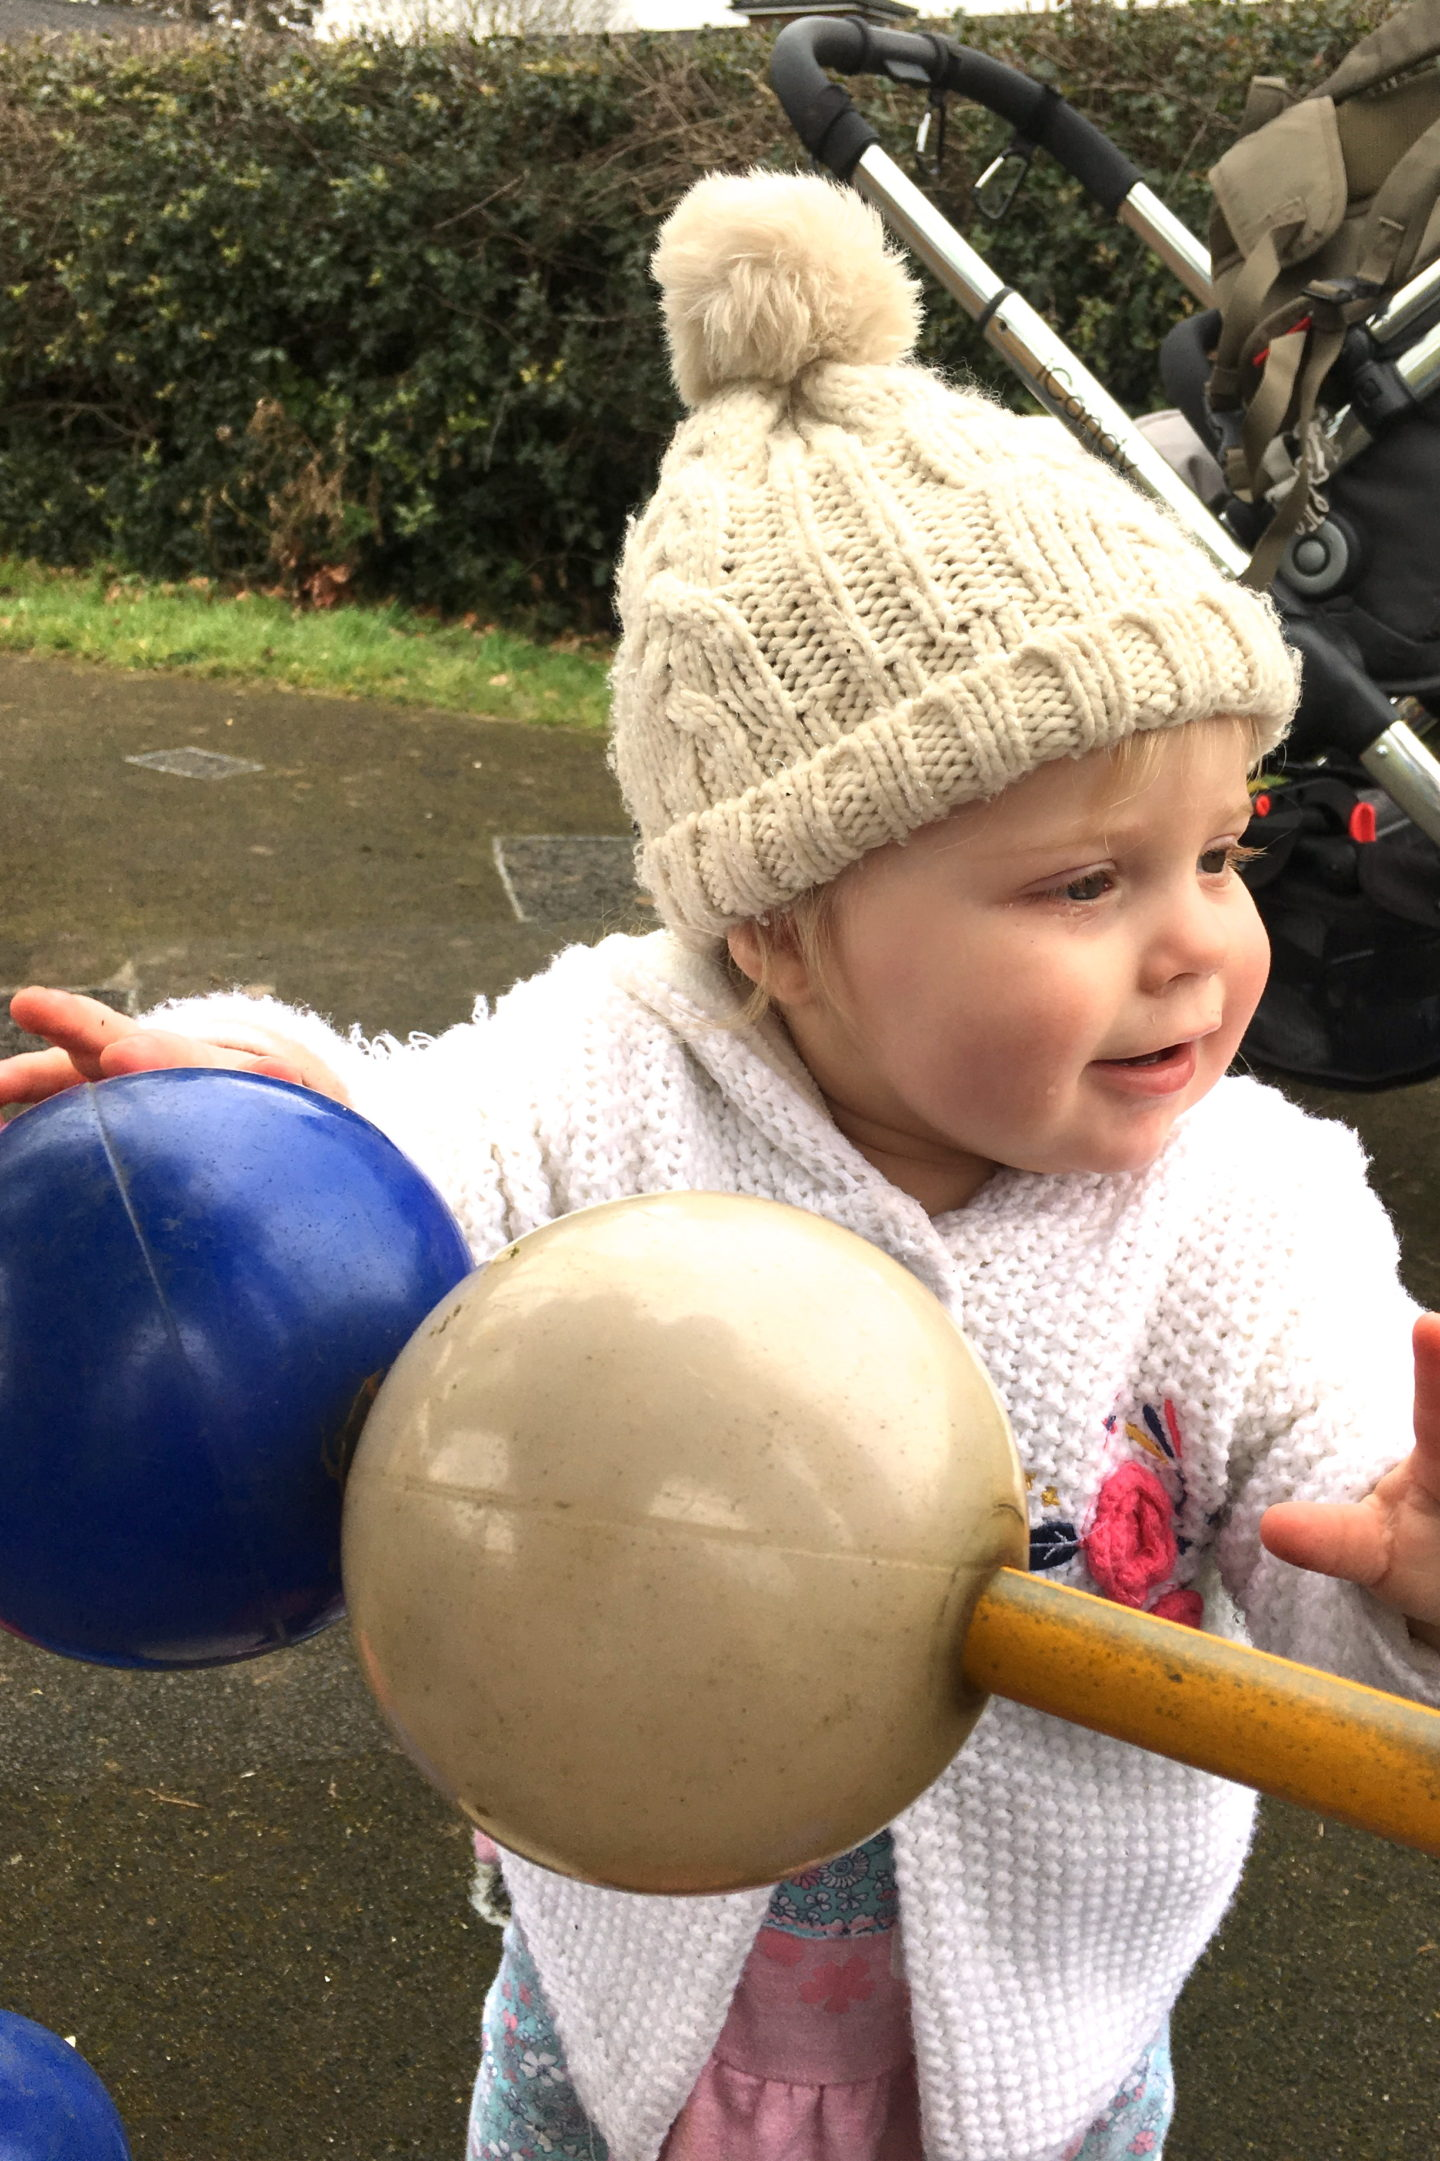 one year old girl in bobble hat, playing with oversized abacus